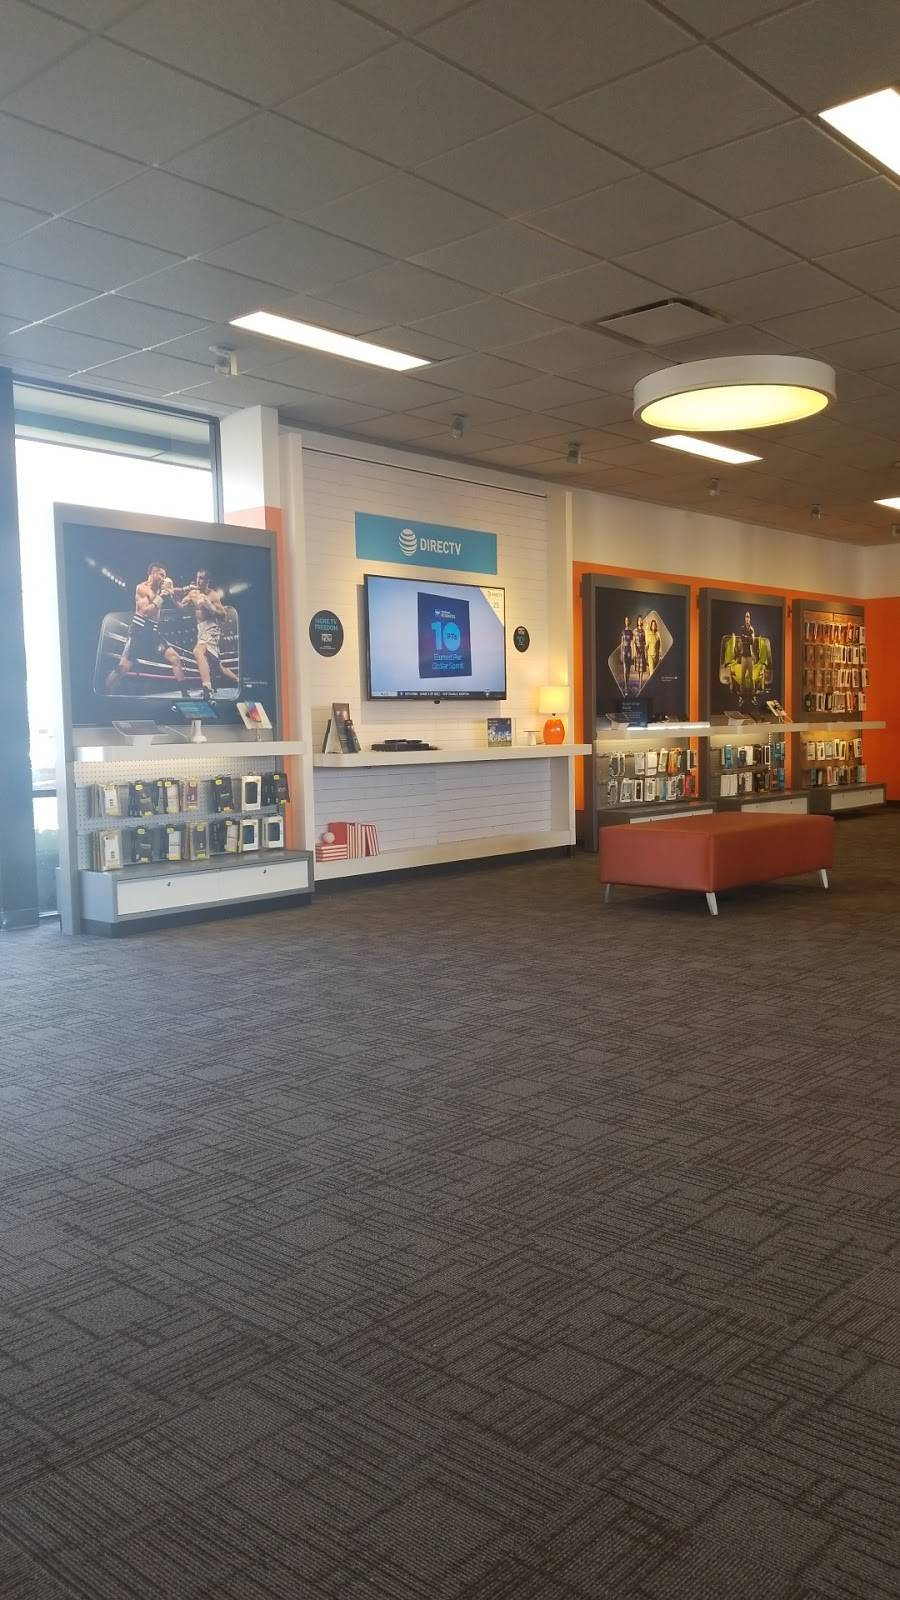 AT&T Store - store  | Photo 5 of 7 | Address: 12154 SE Division St, Portland, OR 97266, USA | Phone: (503) 477-4971